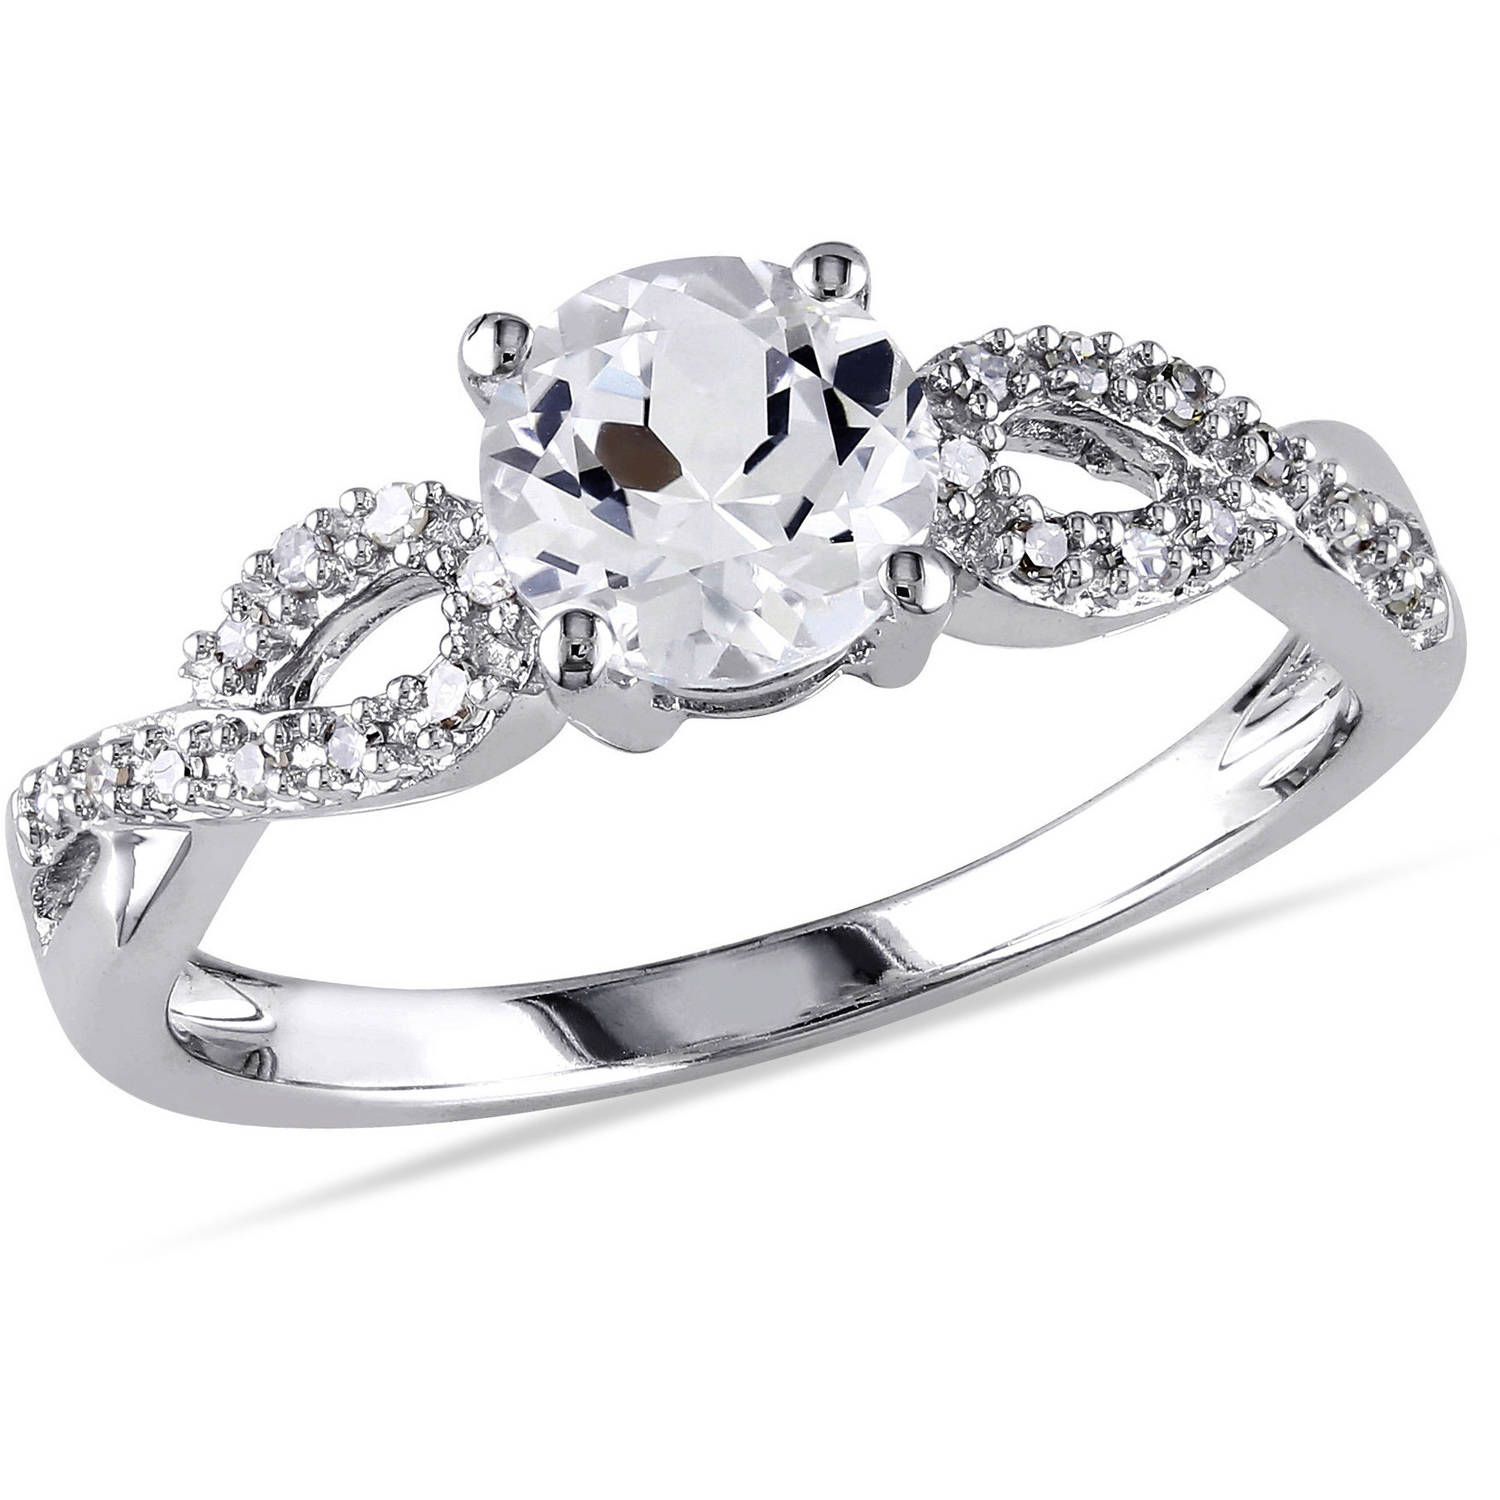 Miabella 1 Carat T.G.W. Created White Sapphire and 1/10 Carat T.W. Diamond 10kt White Gold Cross-Over Engagement Ring